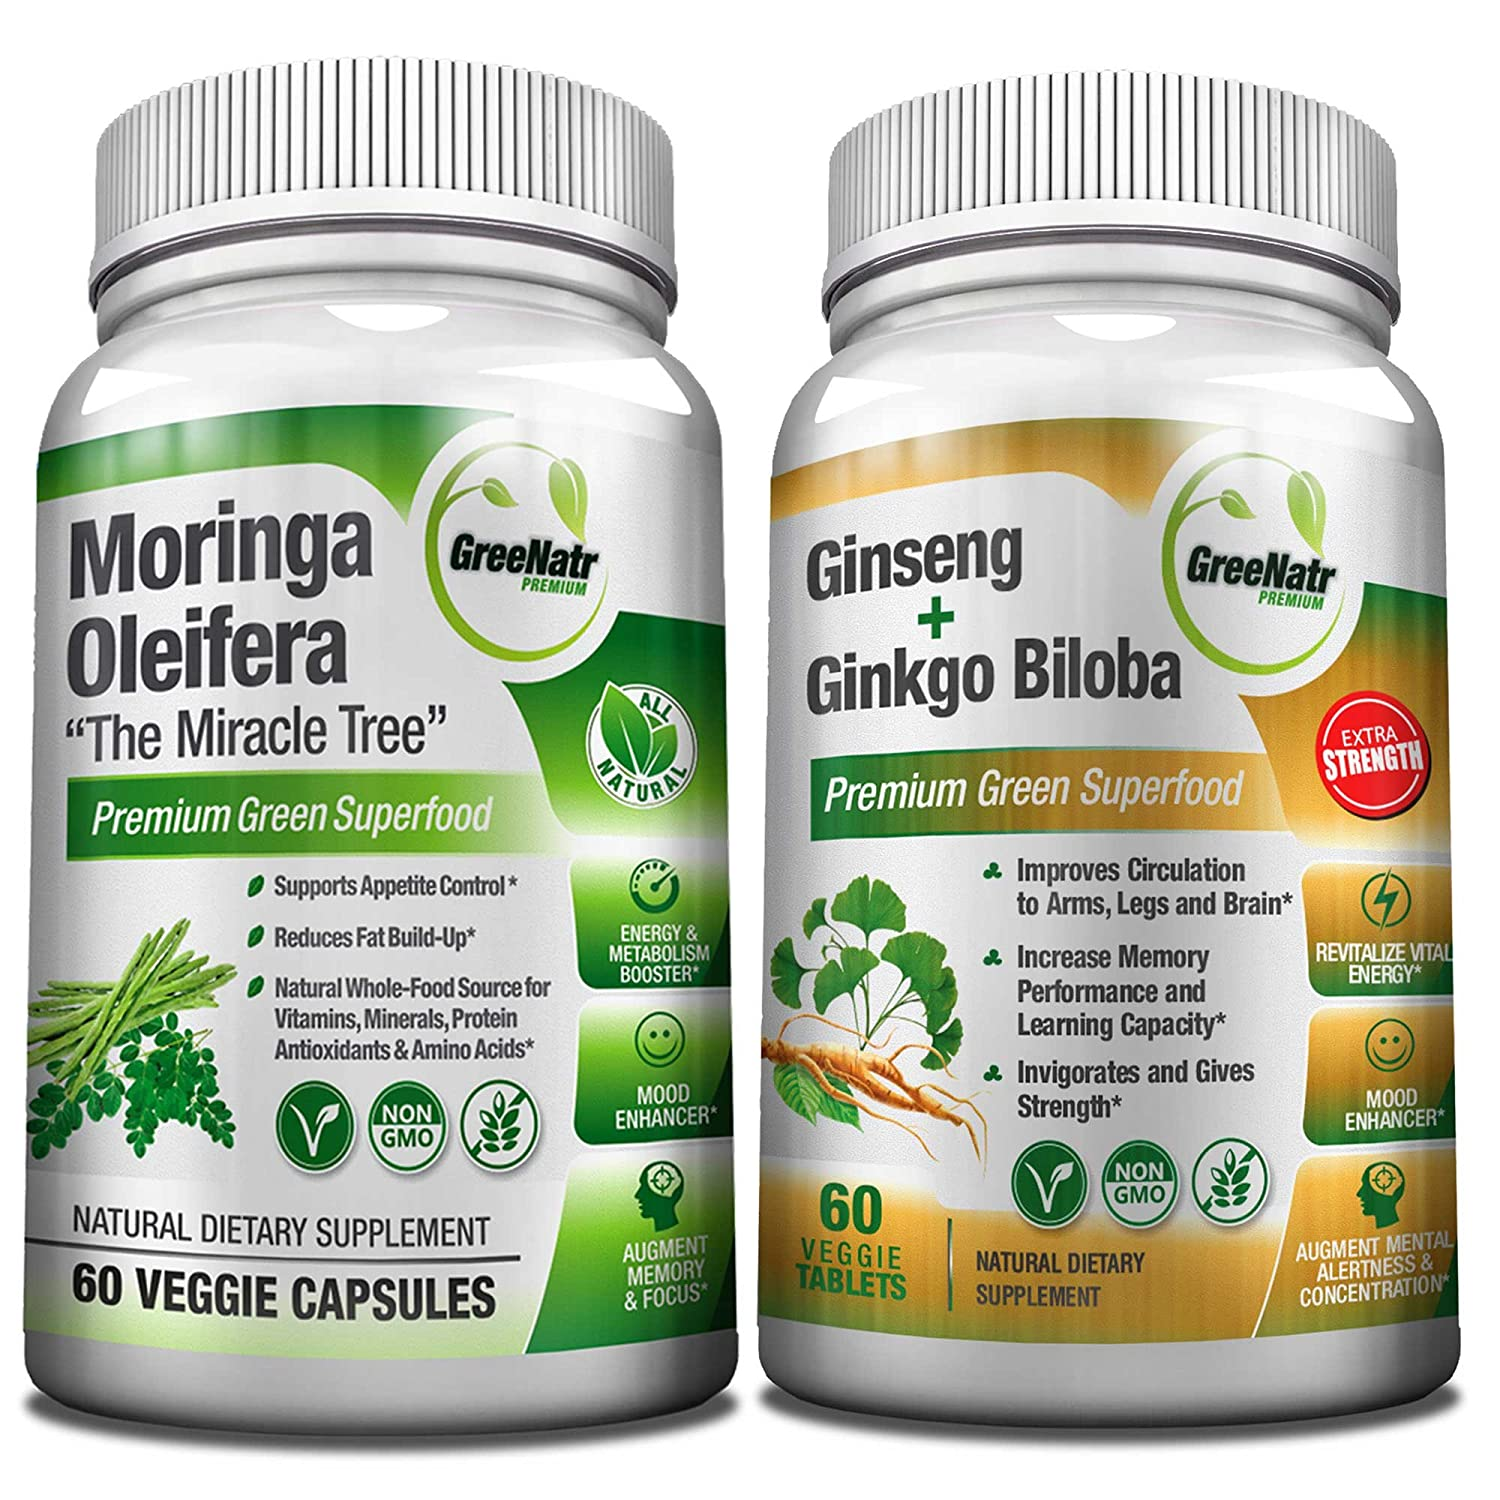 Focus Energy Bundle Panax Ginseng Ginkgo Biloba Tablets Moringa Oleifera Capsules – Premium Non-GMO Veggie Superfood – Traditional Energy Booster and Brain Sharpener – Unique Trio Supplement